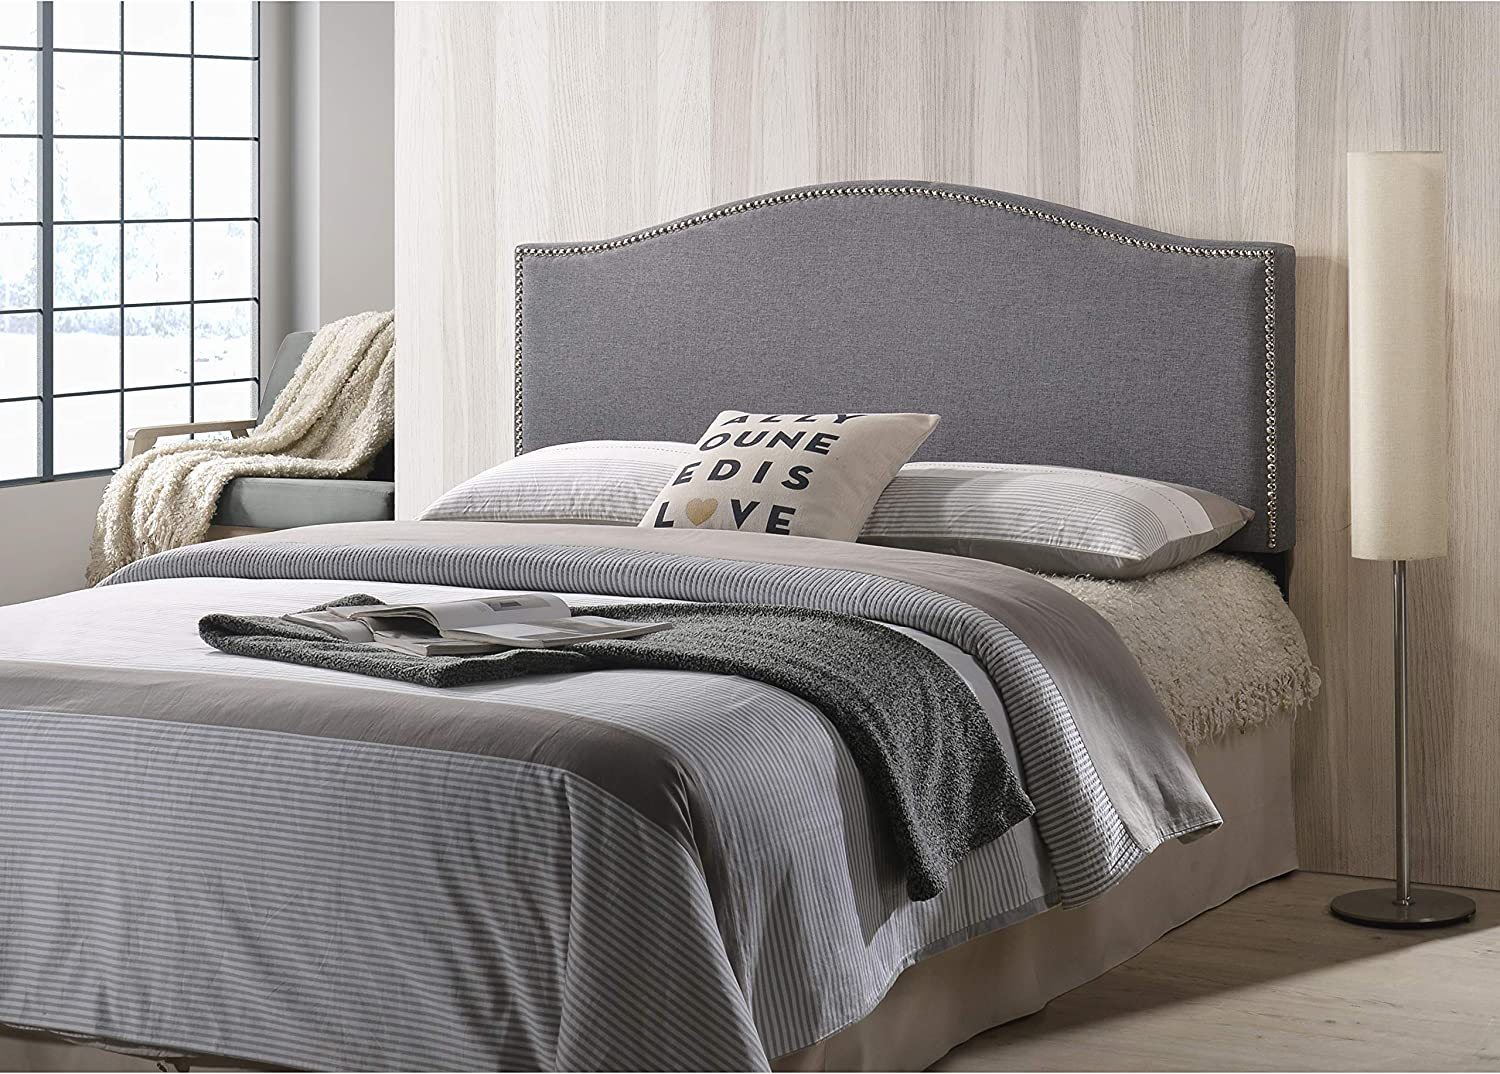 POLY BARK Ariella Headboard with Nailhead Trim, Queen Size, Gray